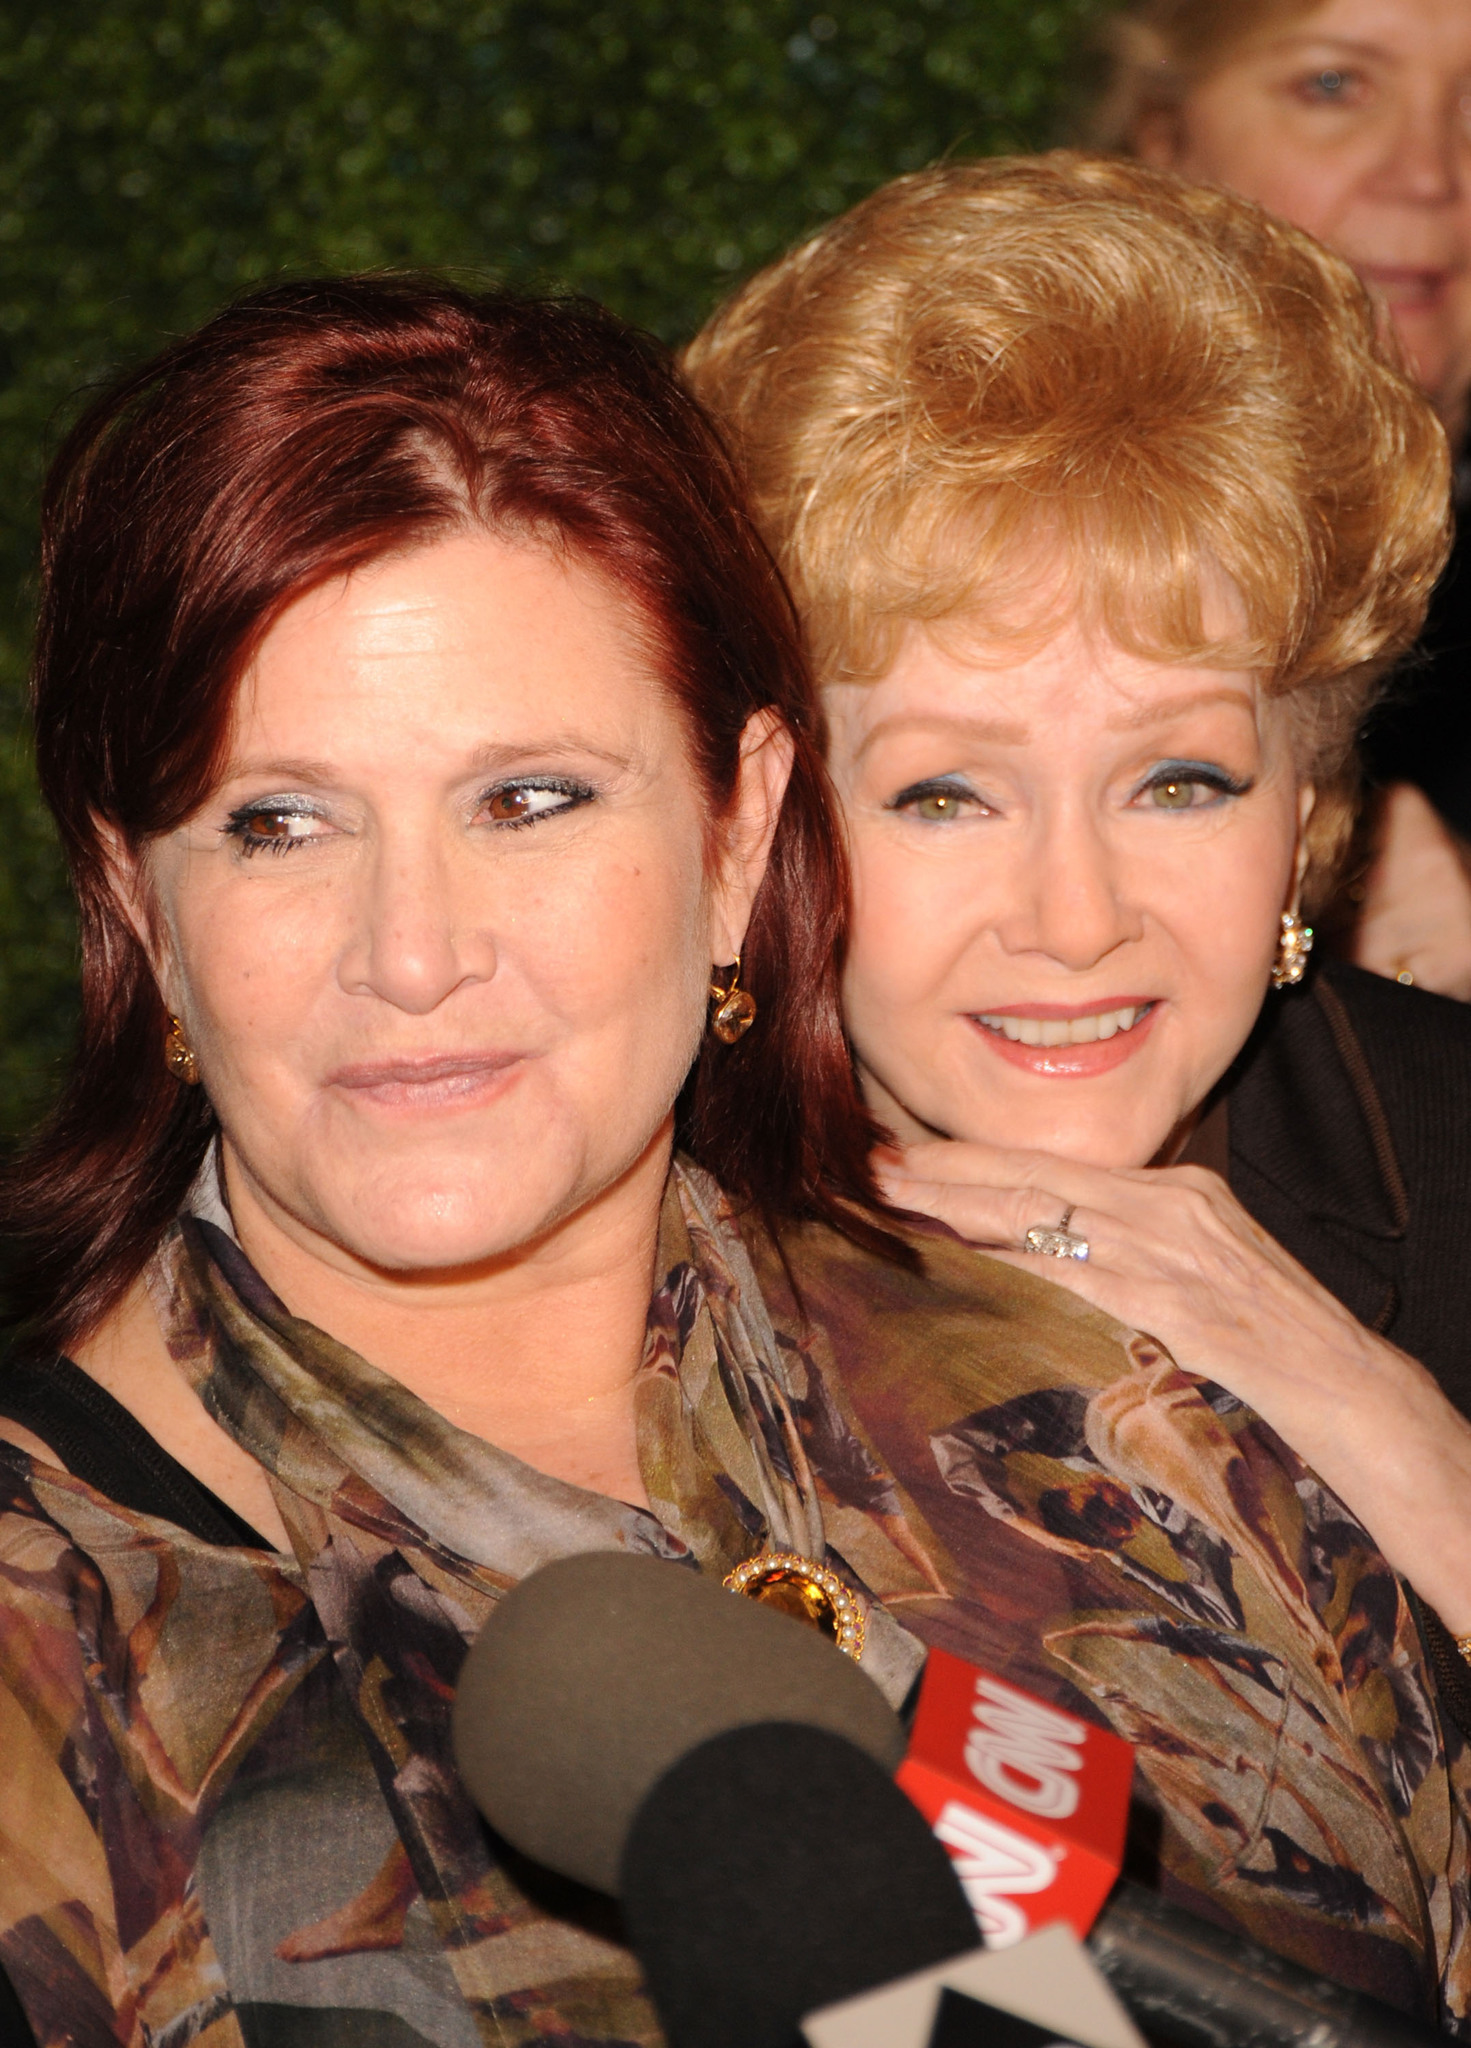 Carrie Fisher and Debbie Reynolds at an event for Carrie Fisher: Wishful Drinking (2010)